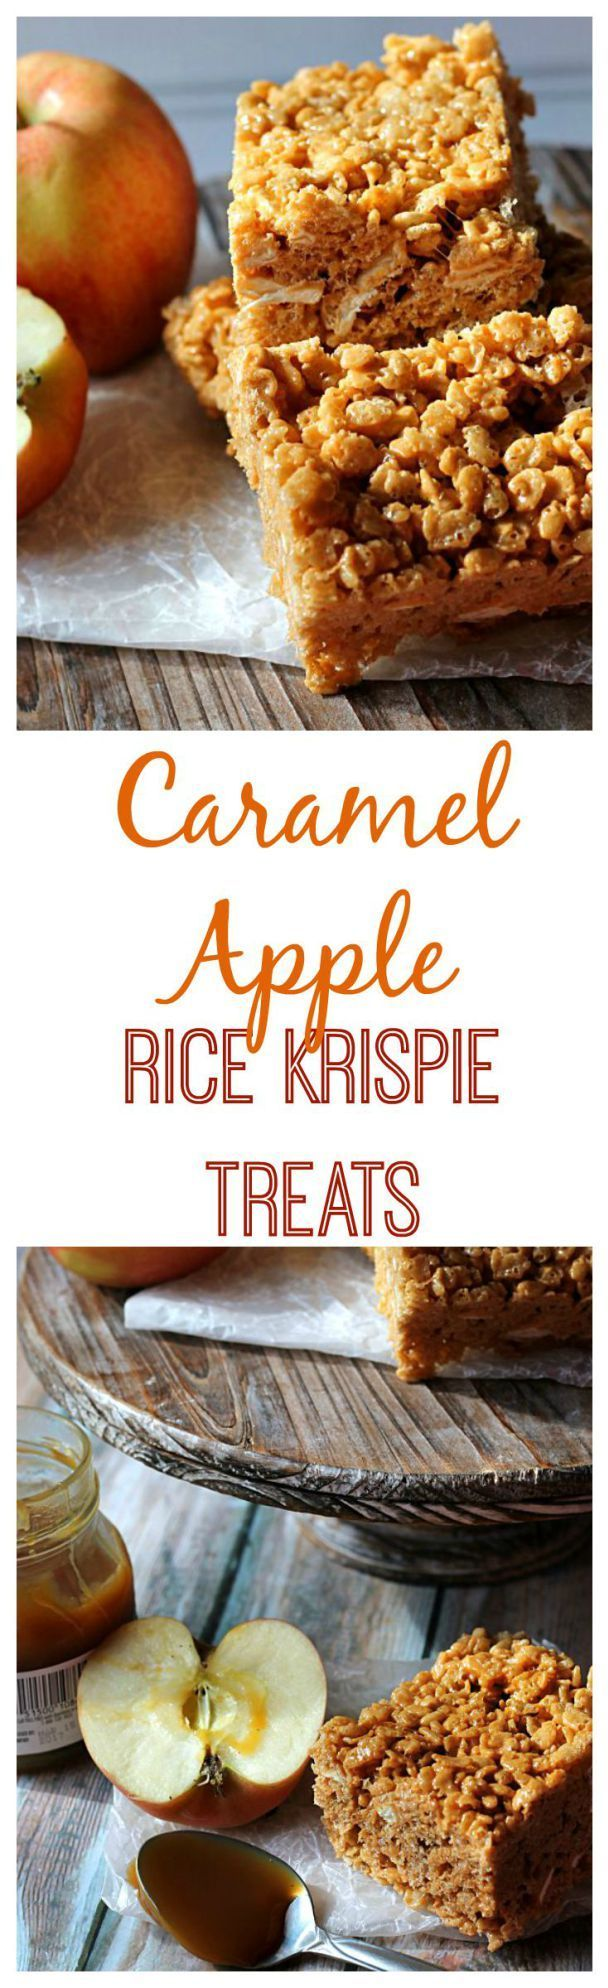 Caramel Apple Rice Krispie Treats - recipes - #Apple #caramel #Krispie #recipes #Rice #Treats #ricekrispiestreats